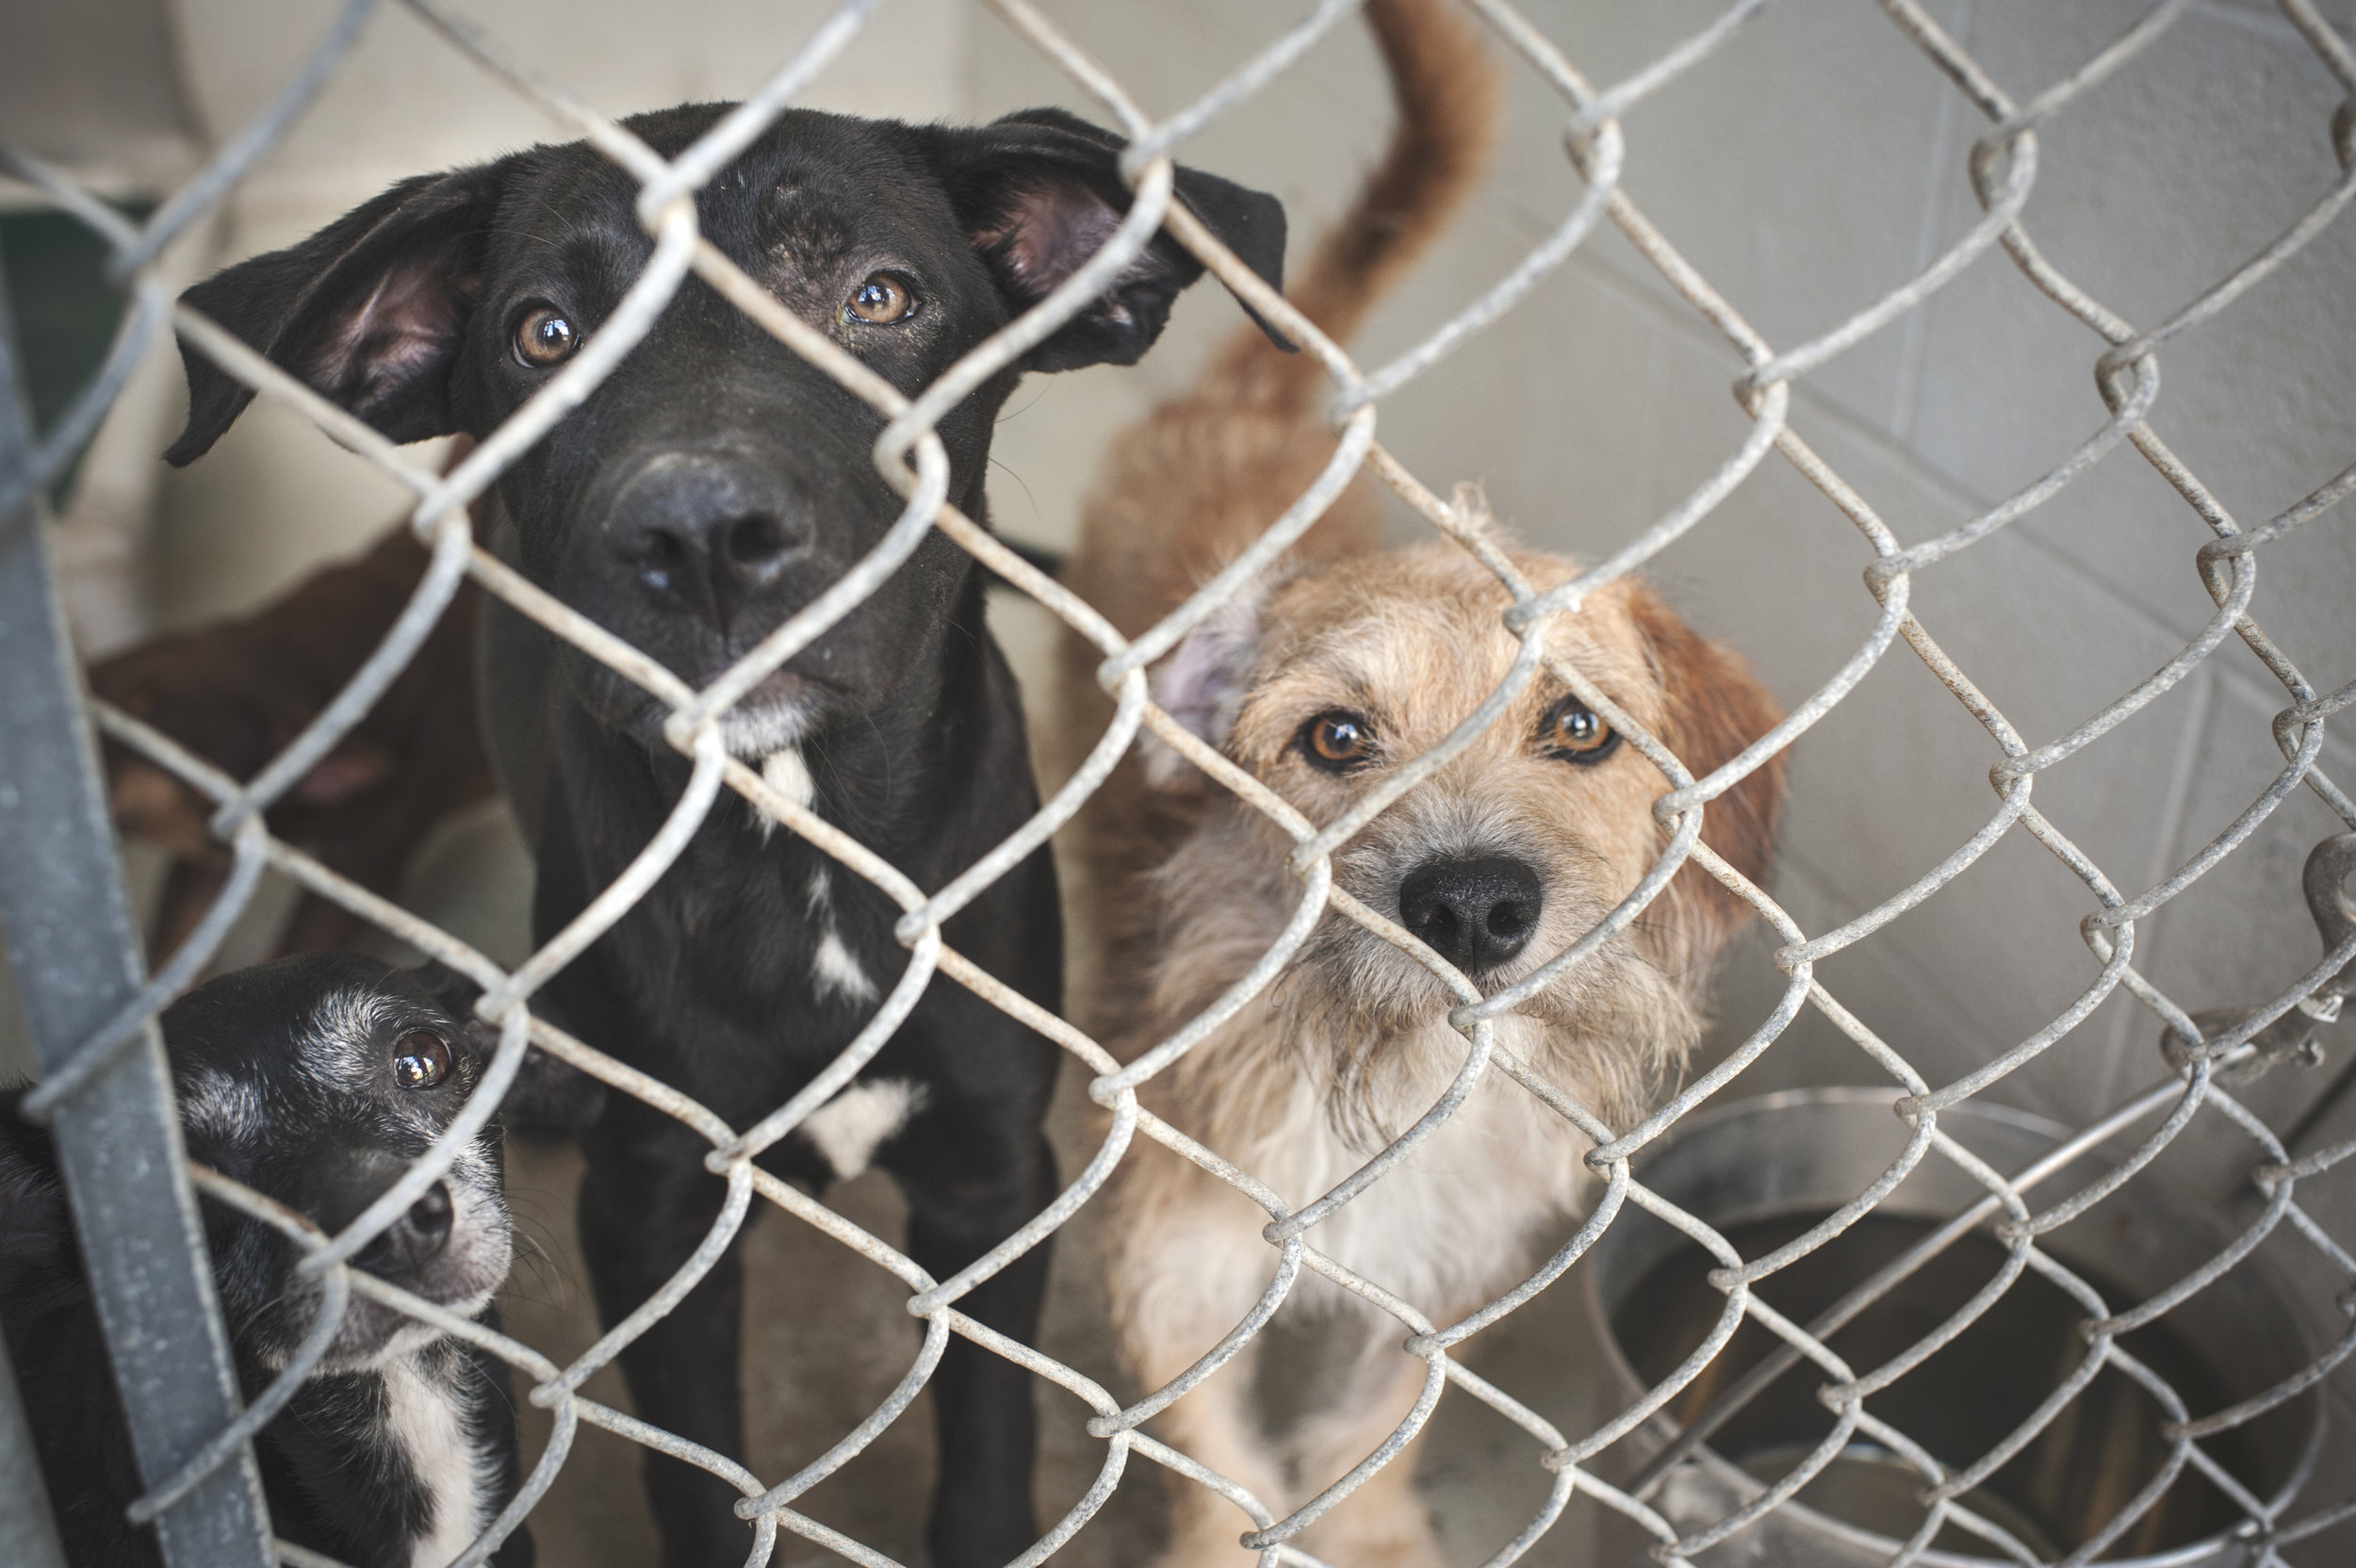 Just one of the many full kennels at Ft. Bend County Animal Services, where unclaimed dogs can only be held for a period of three days or 72 hours.   Dudley Do-Right (far right) is one of the dogs that peacelovedogs pulled.